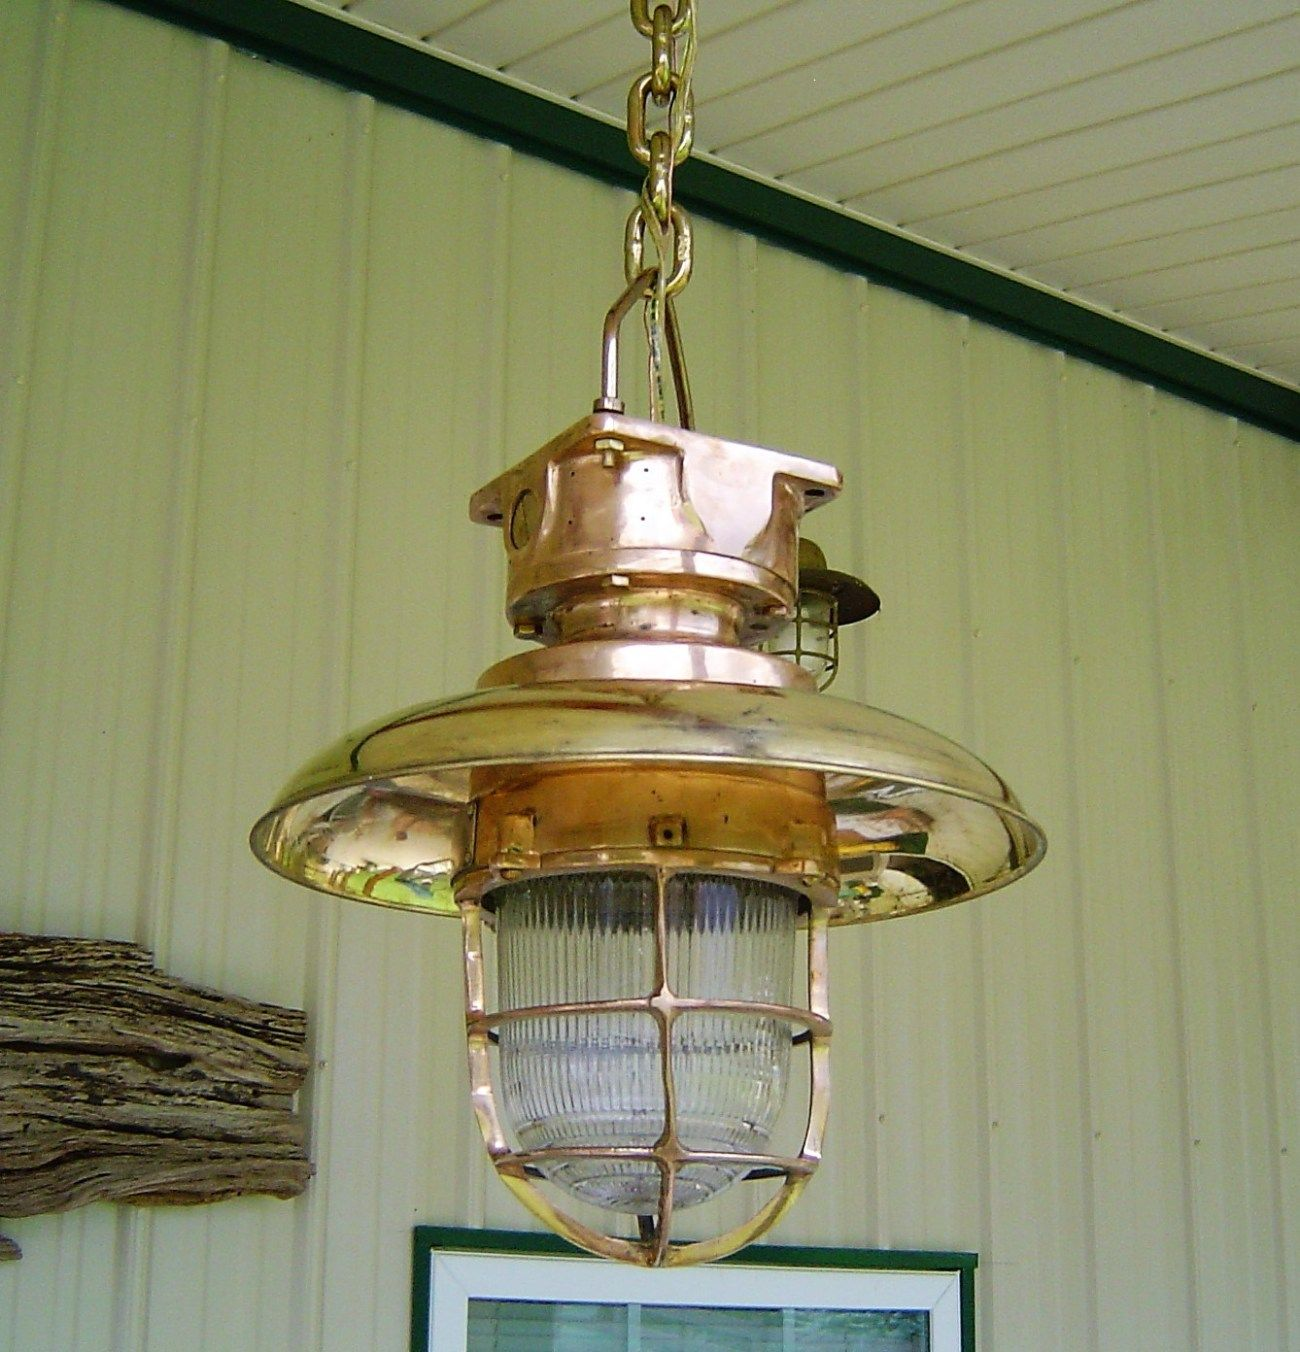 Hanging Pendant Light With Brass Cover Big Ship Salvage Hanging Pendant Lights Pendant Light Nautical Ceiling Light